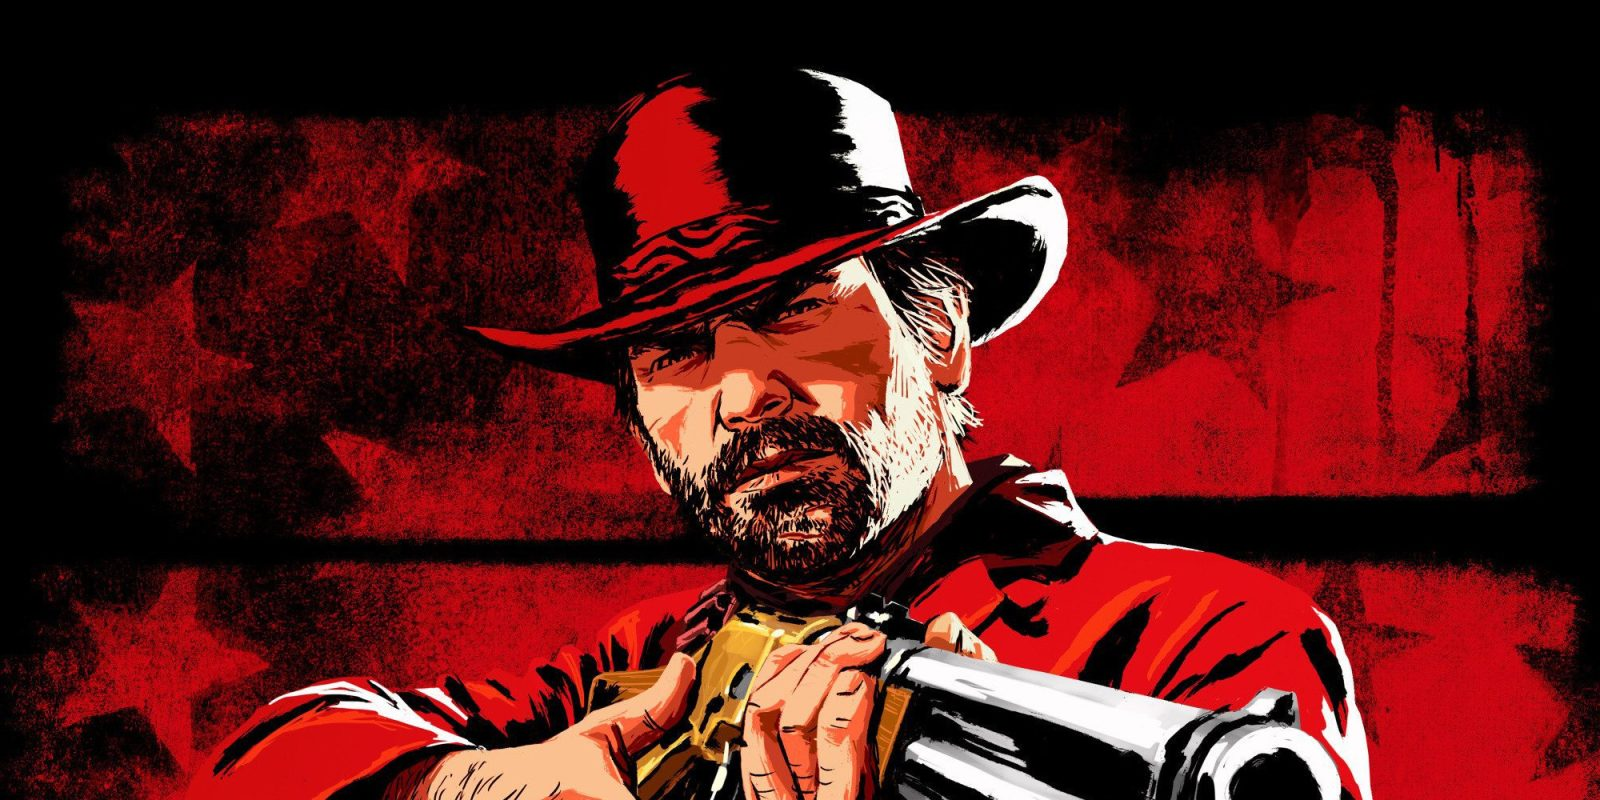 'Red Dead Redemption 2' confirmed for Google Stadia 'at launch,' following debut on PC